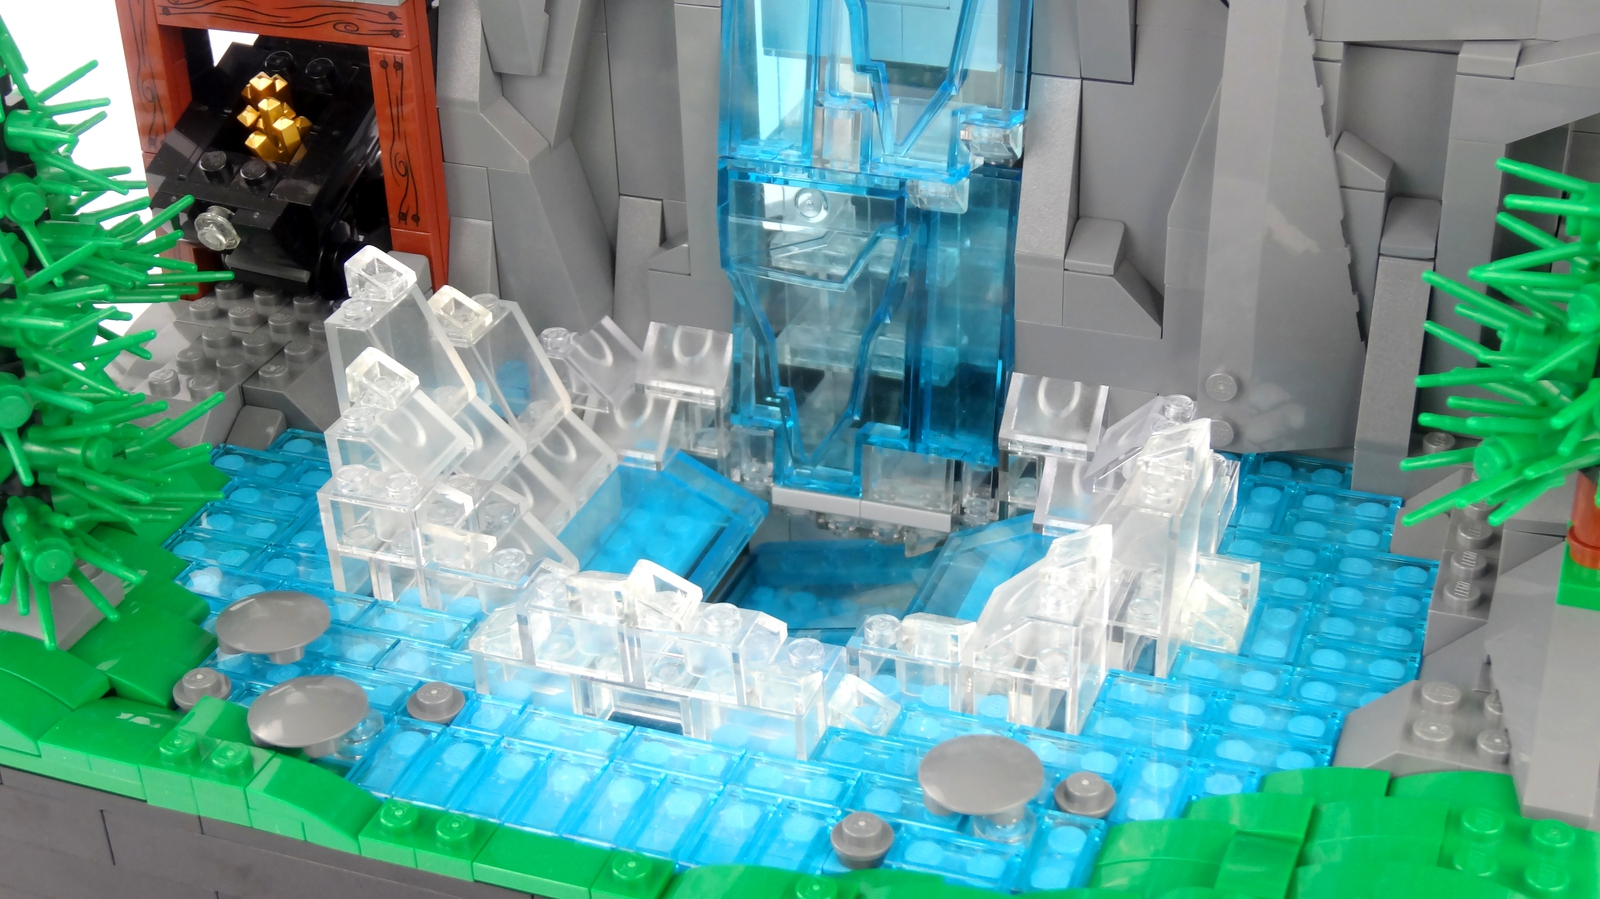 lego-ideas-working-waterfall-with-continuous-flowing-water-legoparadise-4 zusammengebaut.com